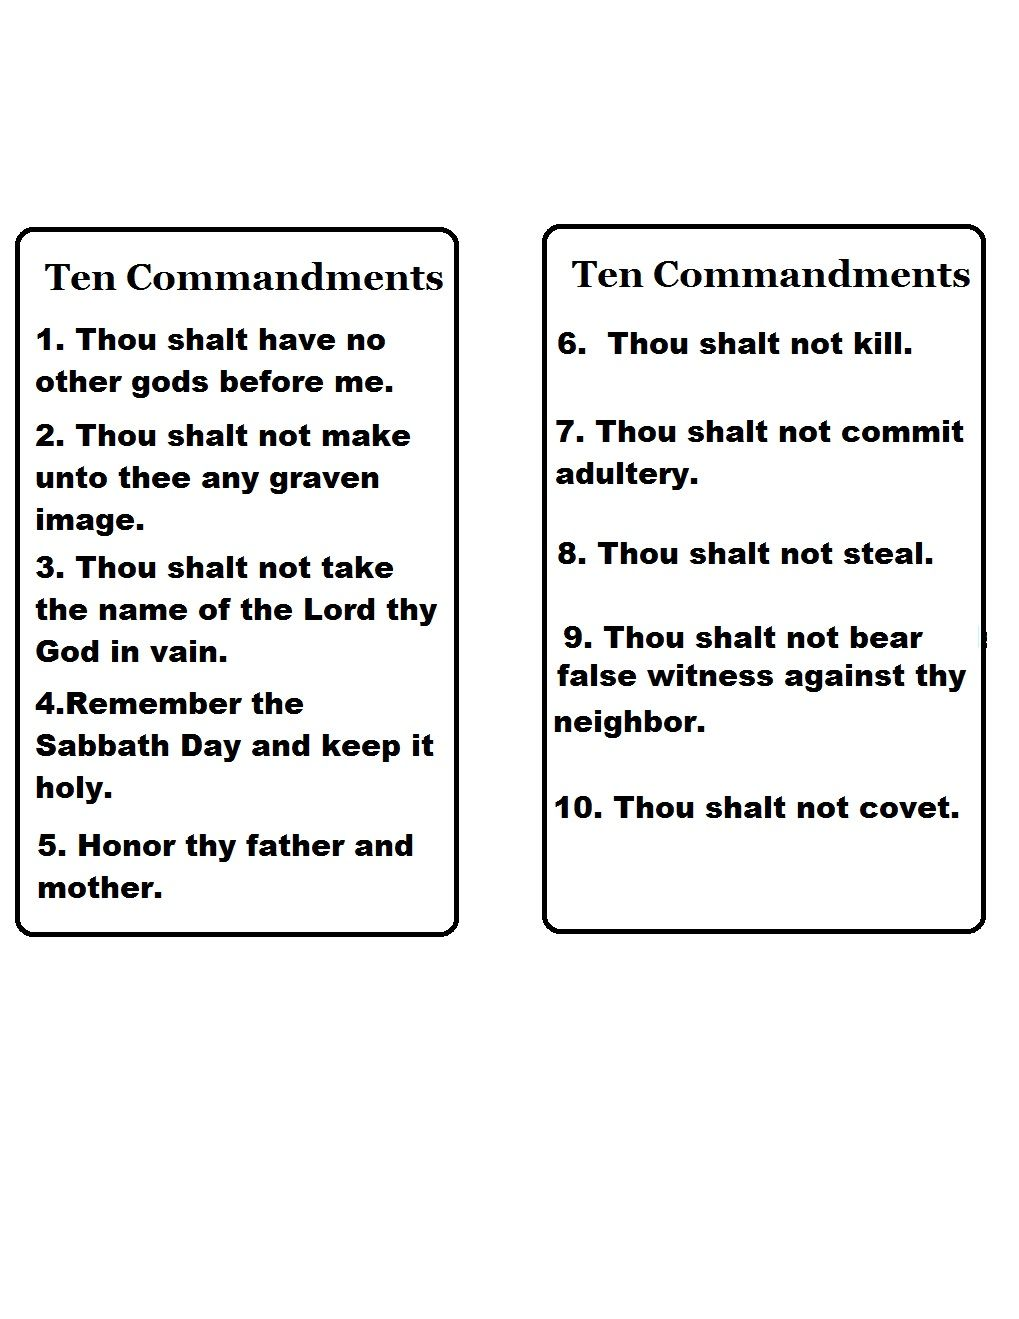 Worksheets Ten Commandments Worksheets ten commandments template print cut out and glue to a stiff board in shape